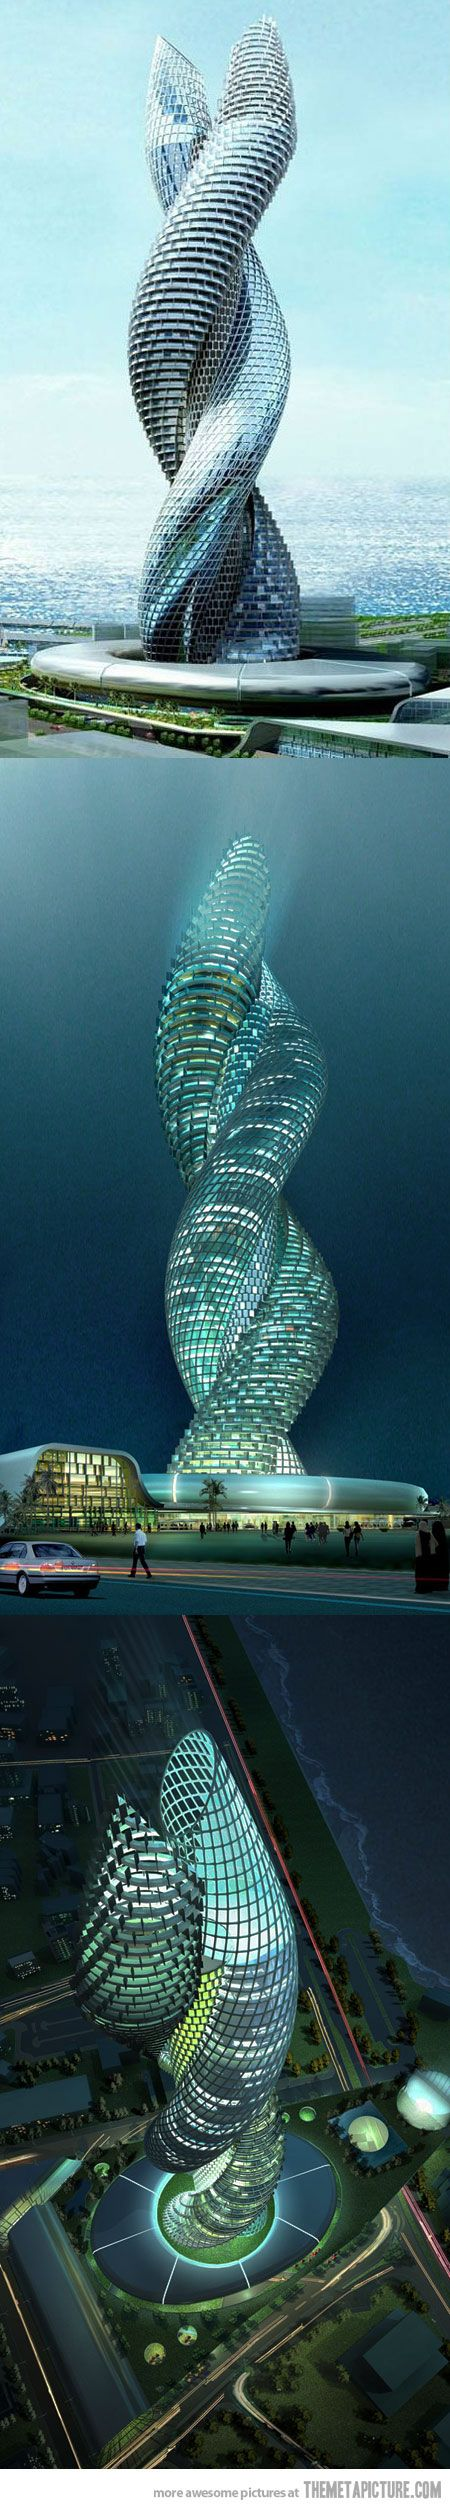 Kuwait - Cobra Tower  #monogramsvacation